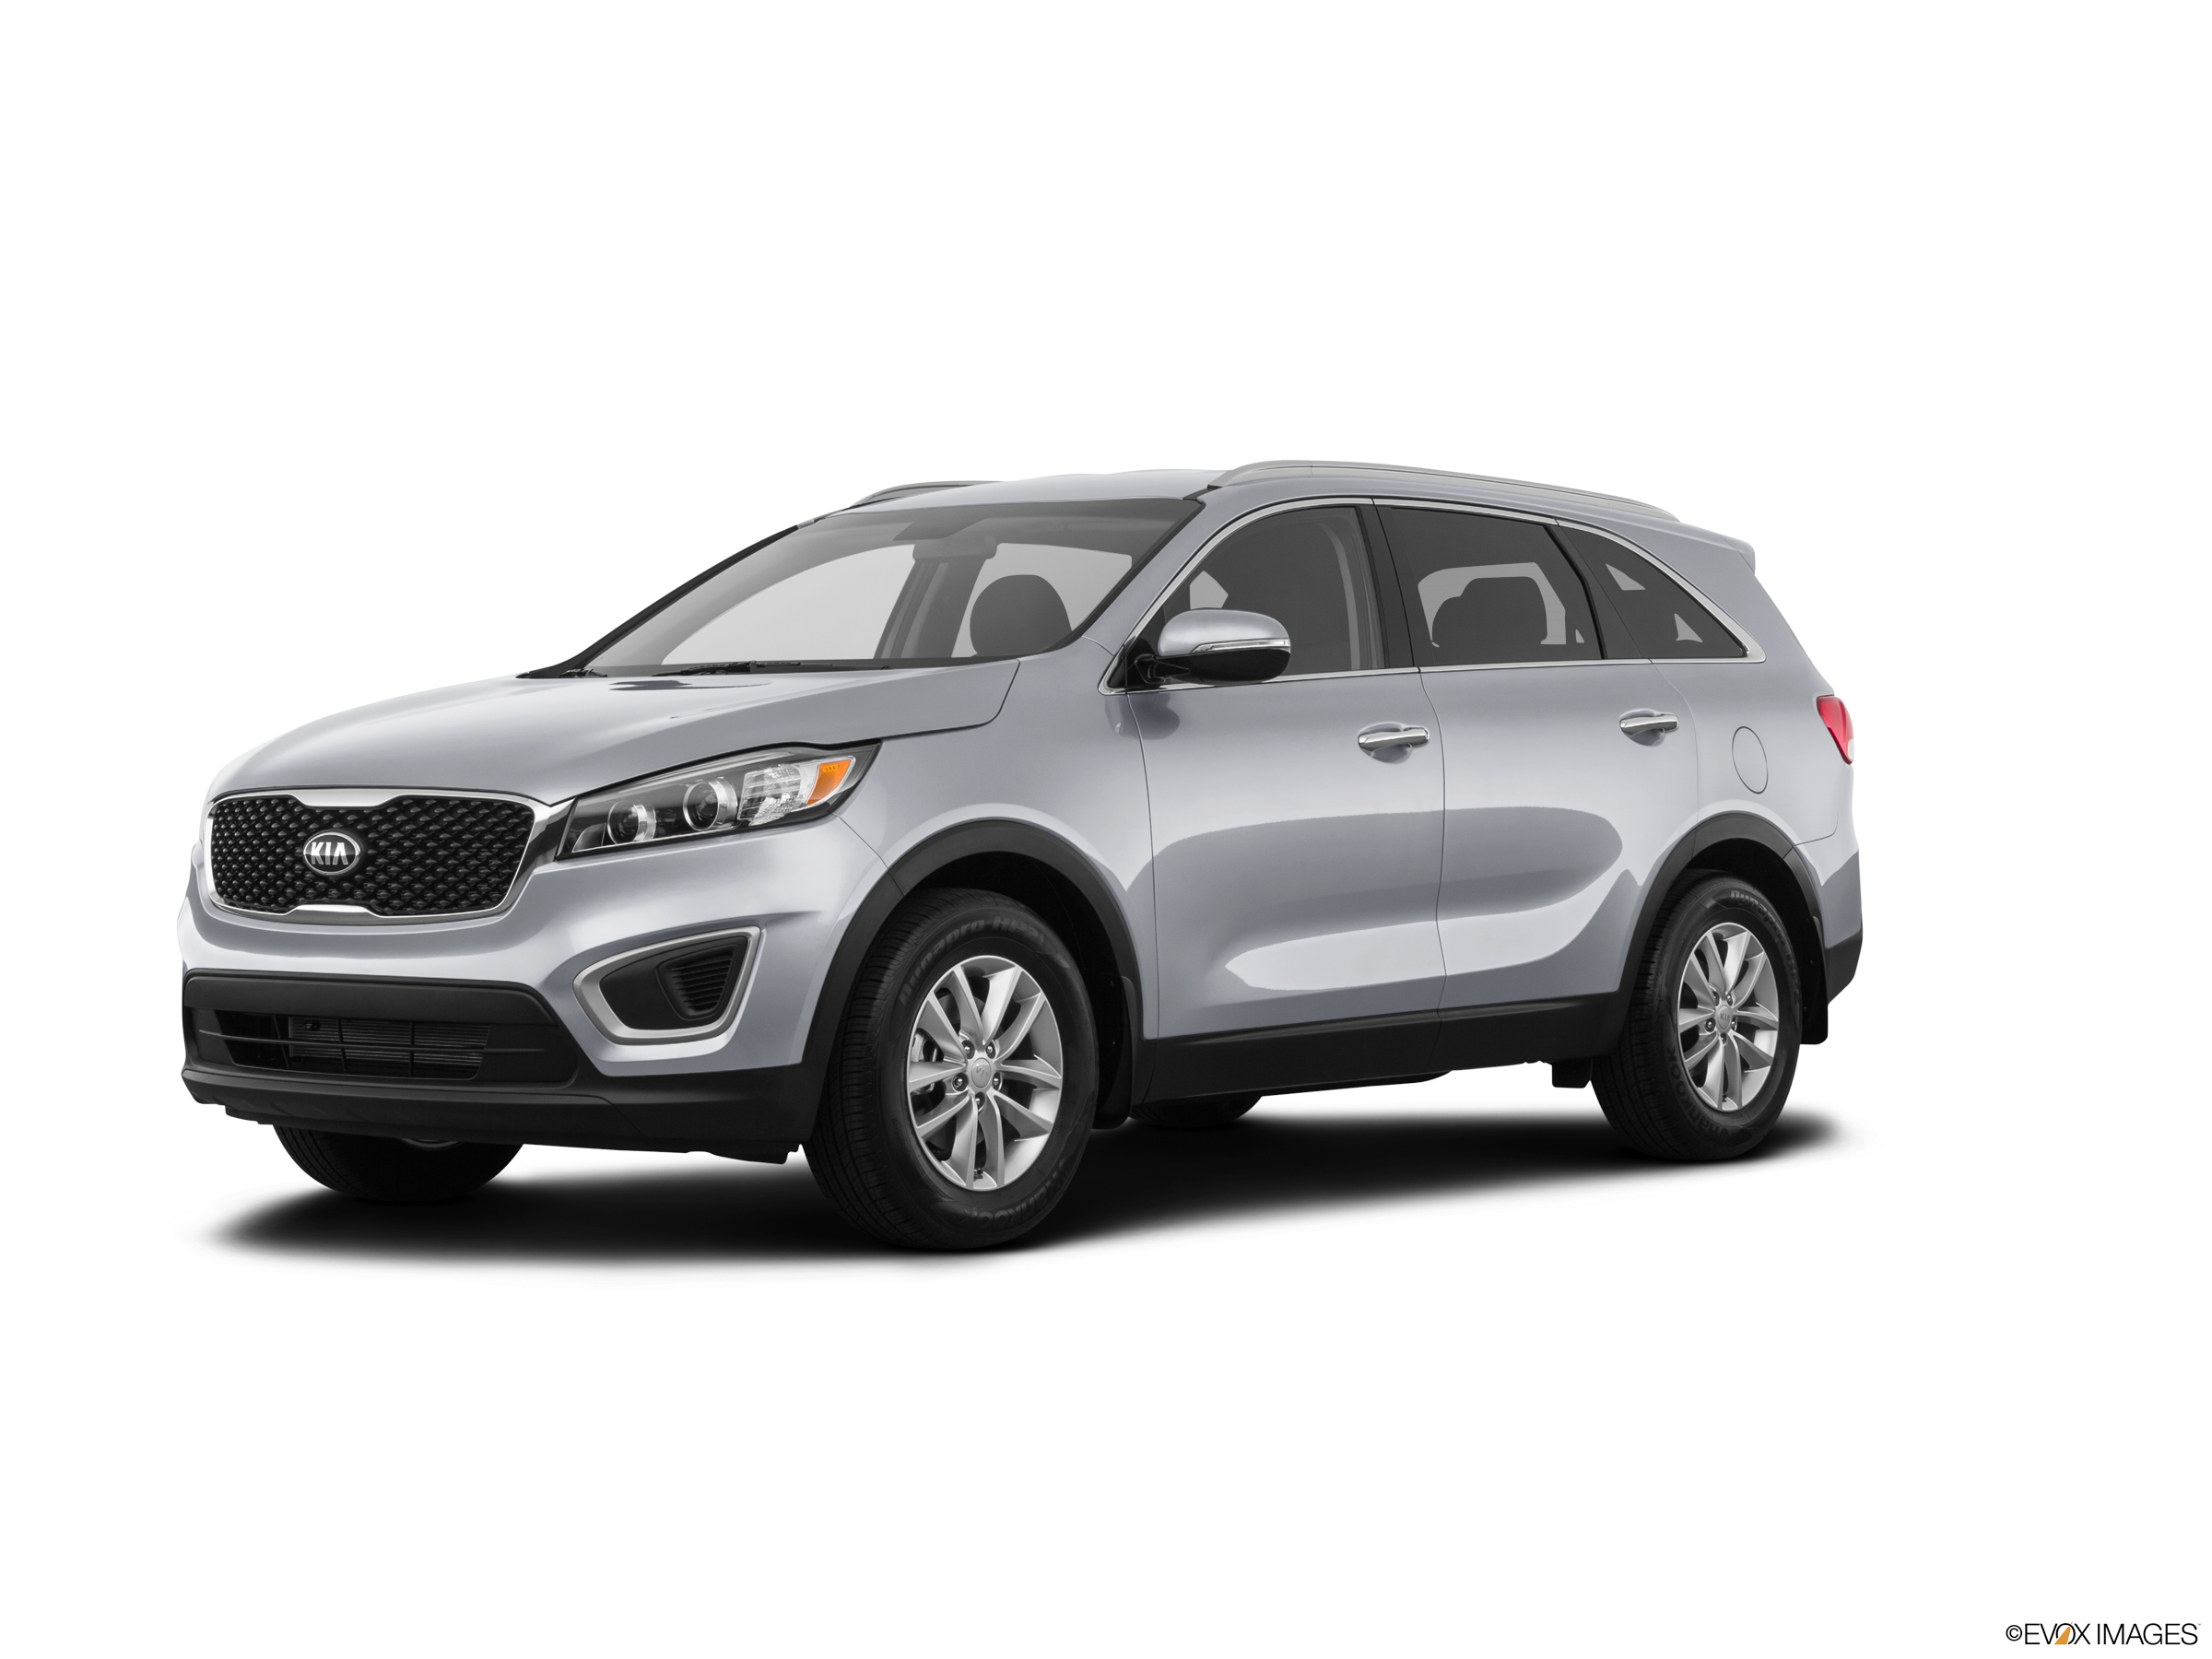 25 Best-Selling SUVs of 2018 - Kia Sorento